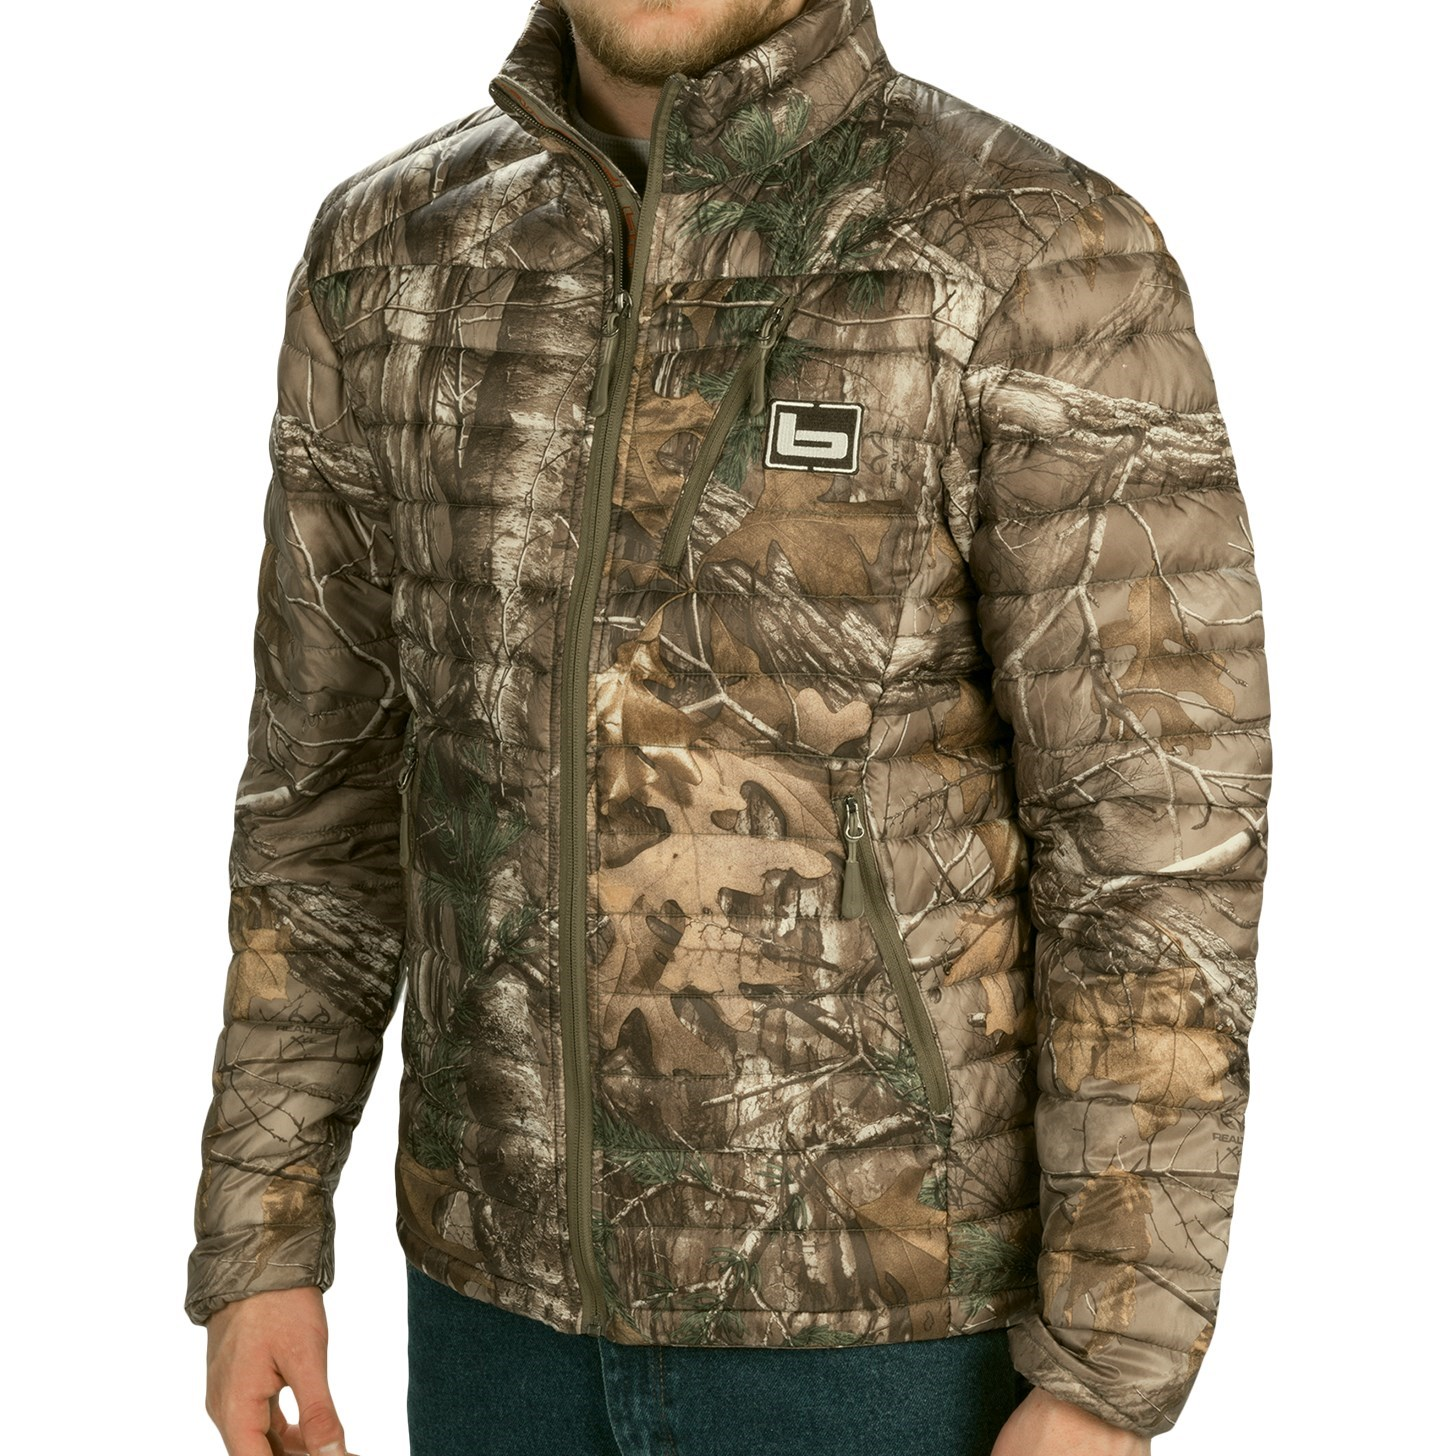 Banded Agassiz Goose Down Jacket (For Men) 9552A - Save 60%